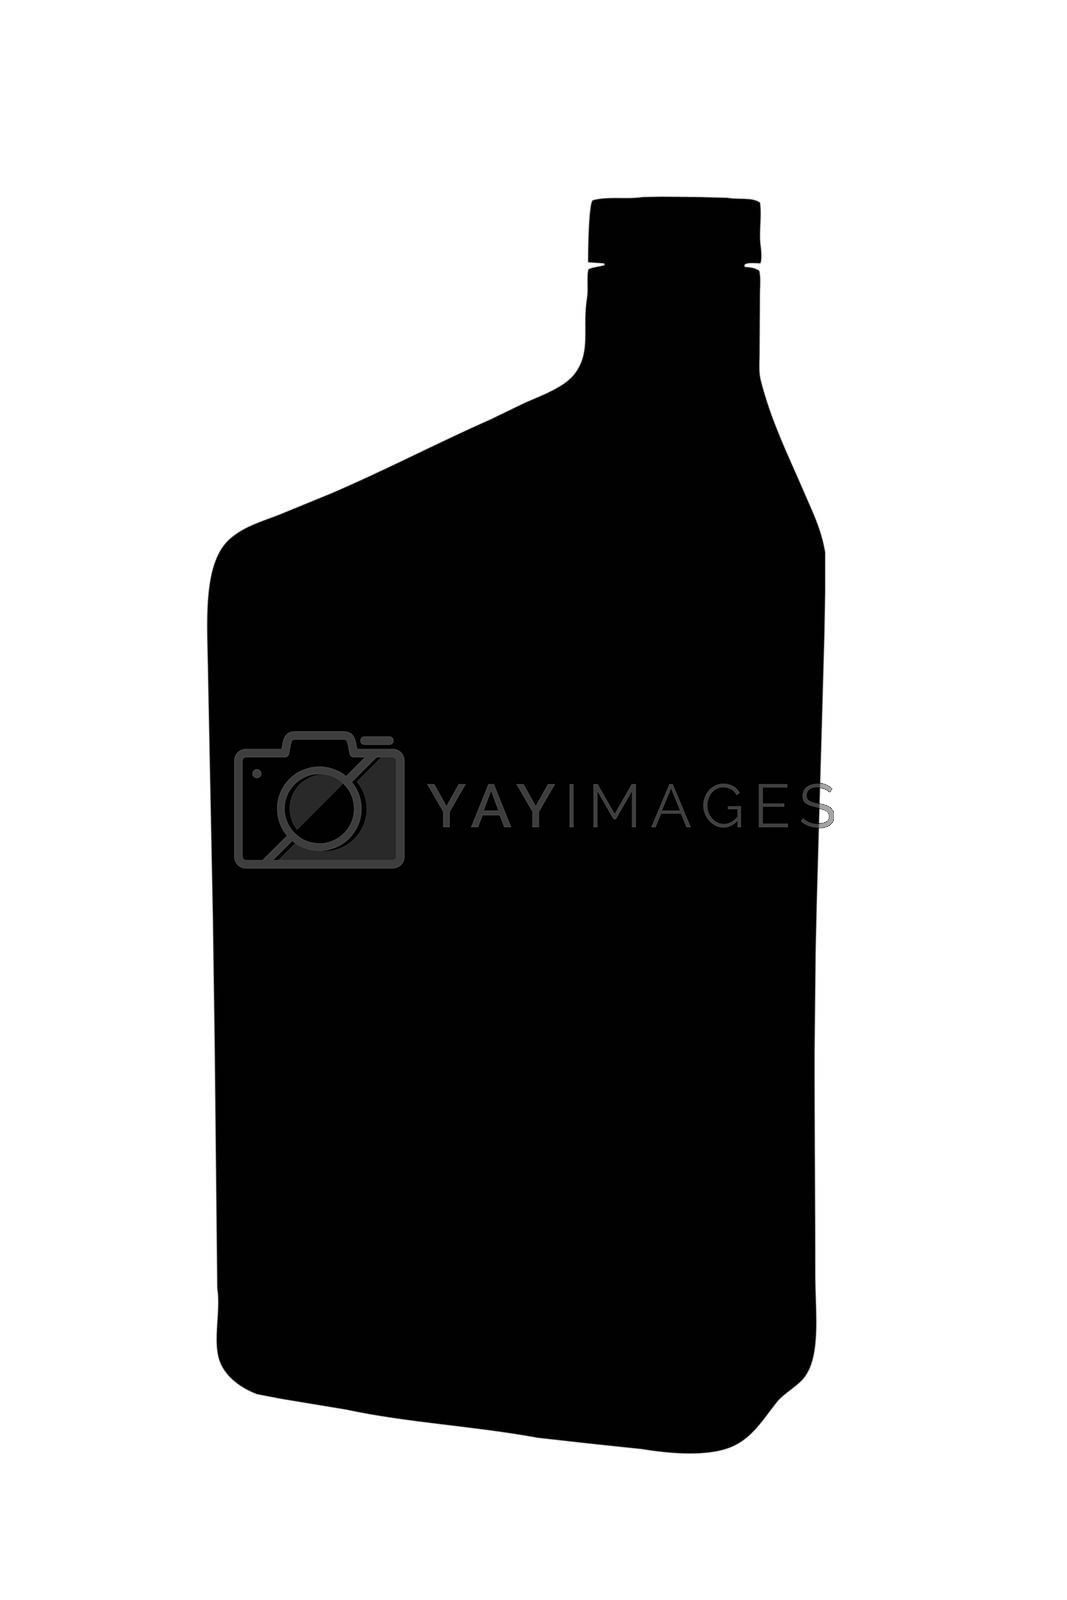 An illustration of a oil container isolated on a white background.